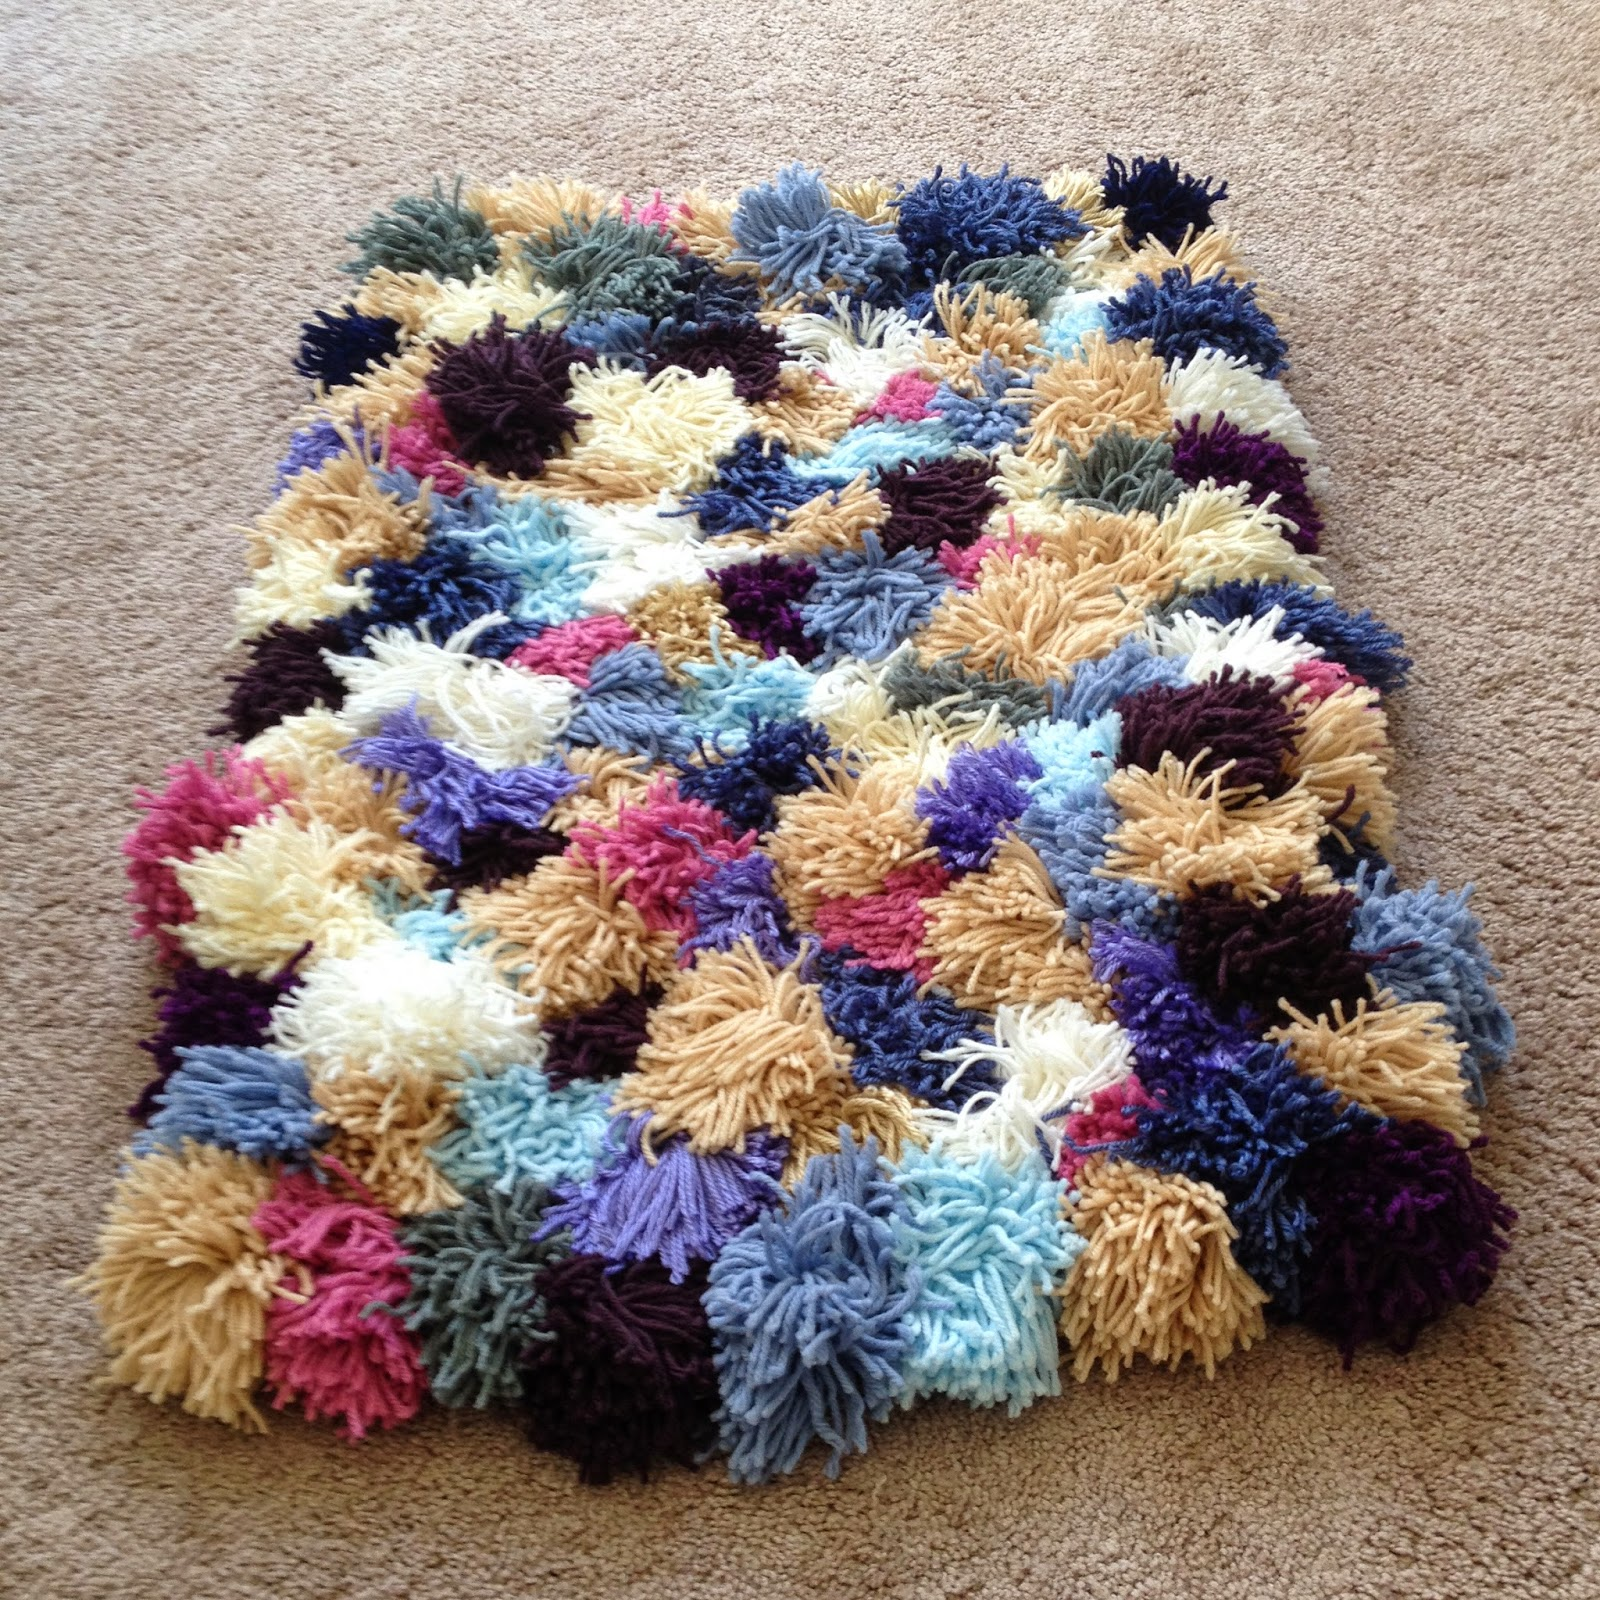 The Crafty Novice Diy Yarn Rug